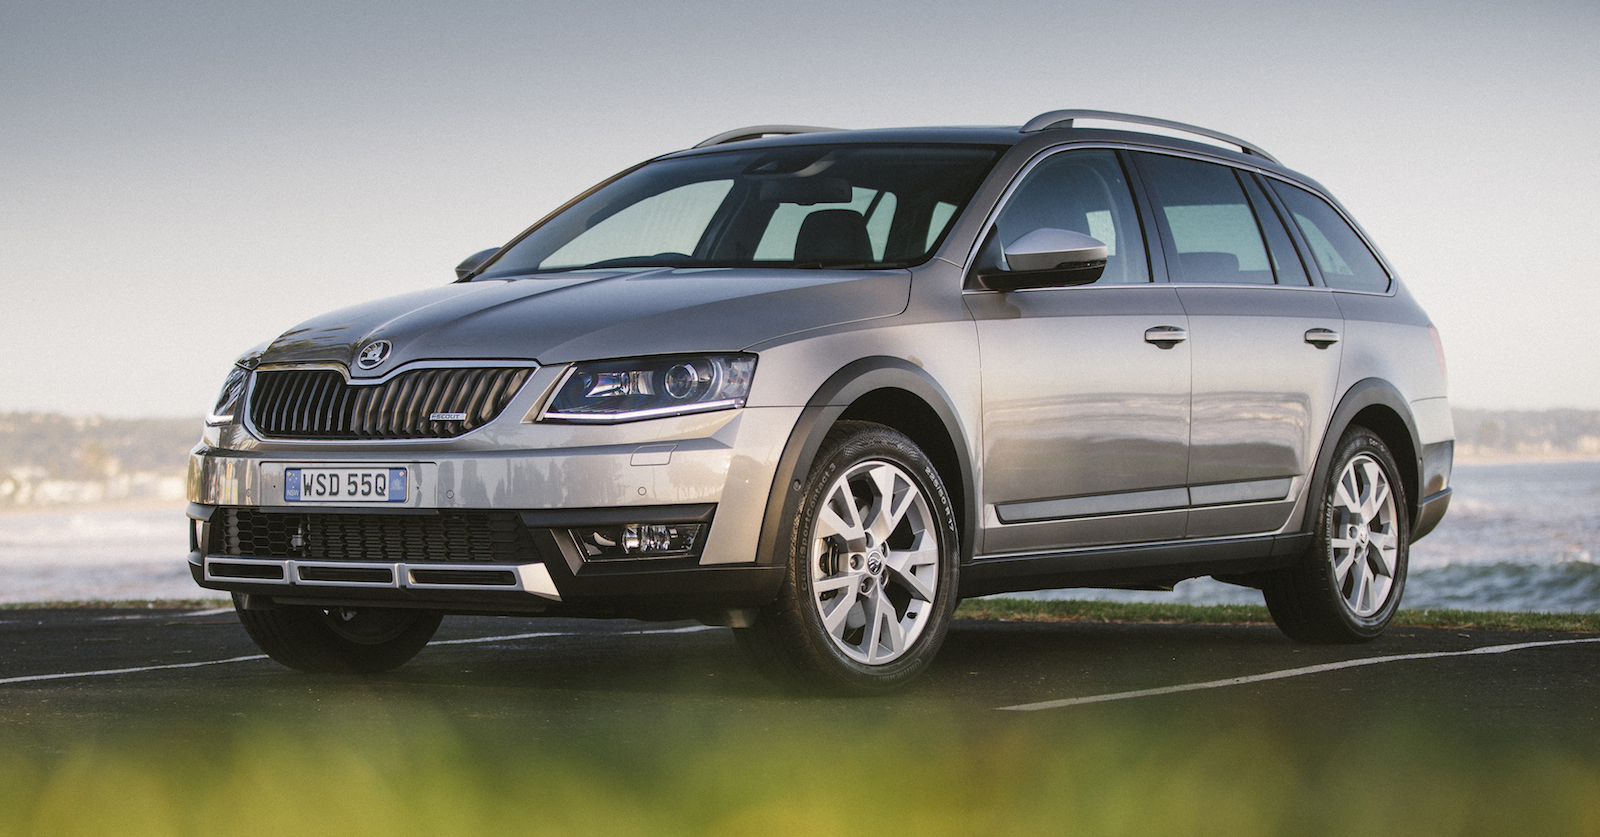 2015 skoda octavia scout 4x4 pricing and specifications. Black Bedroom Furniture Sets. Home Design Ideas